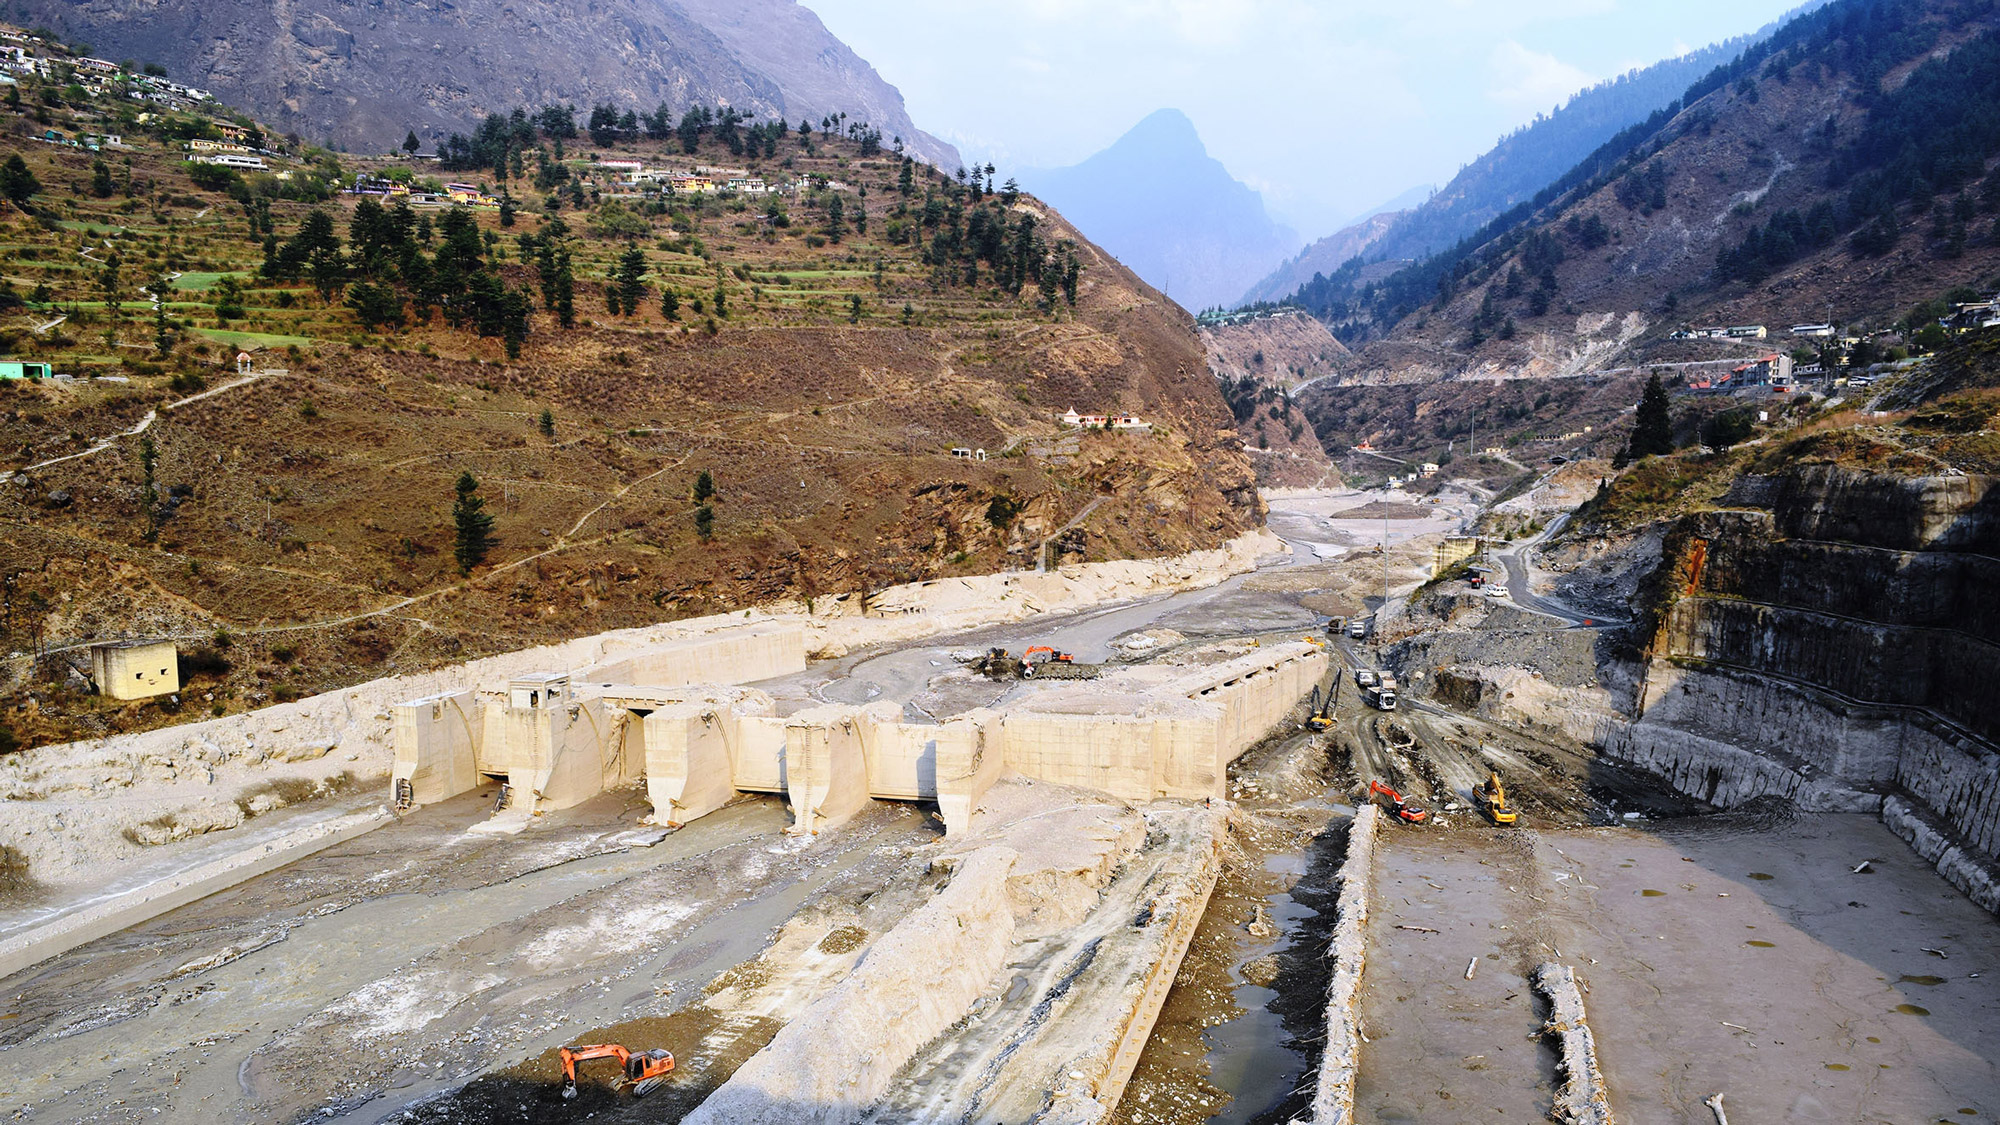 A hydoelectric dam is damaged, nestled in the Himalayan mountain scape.